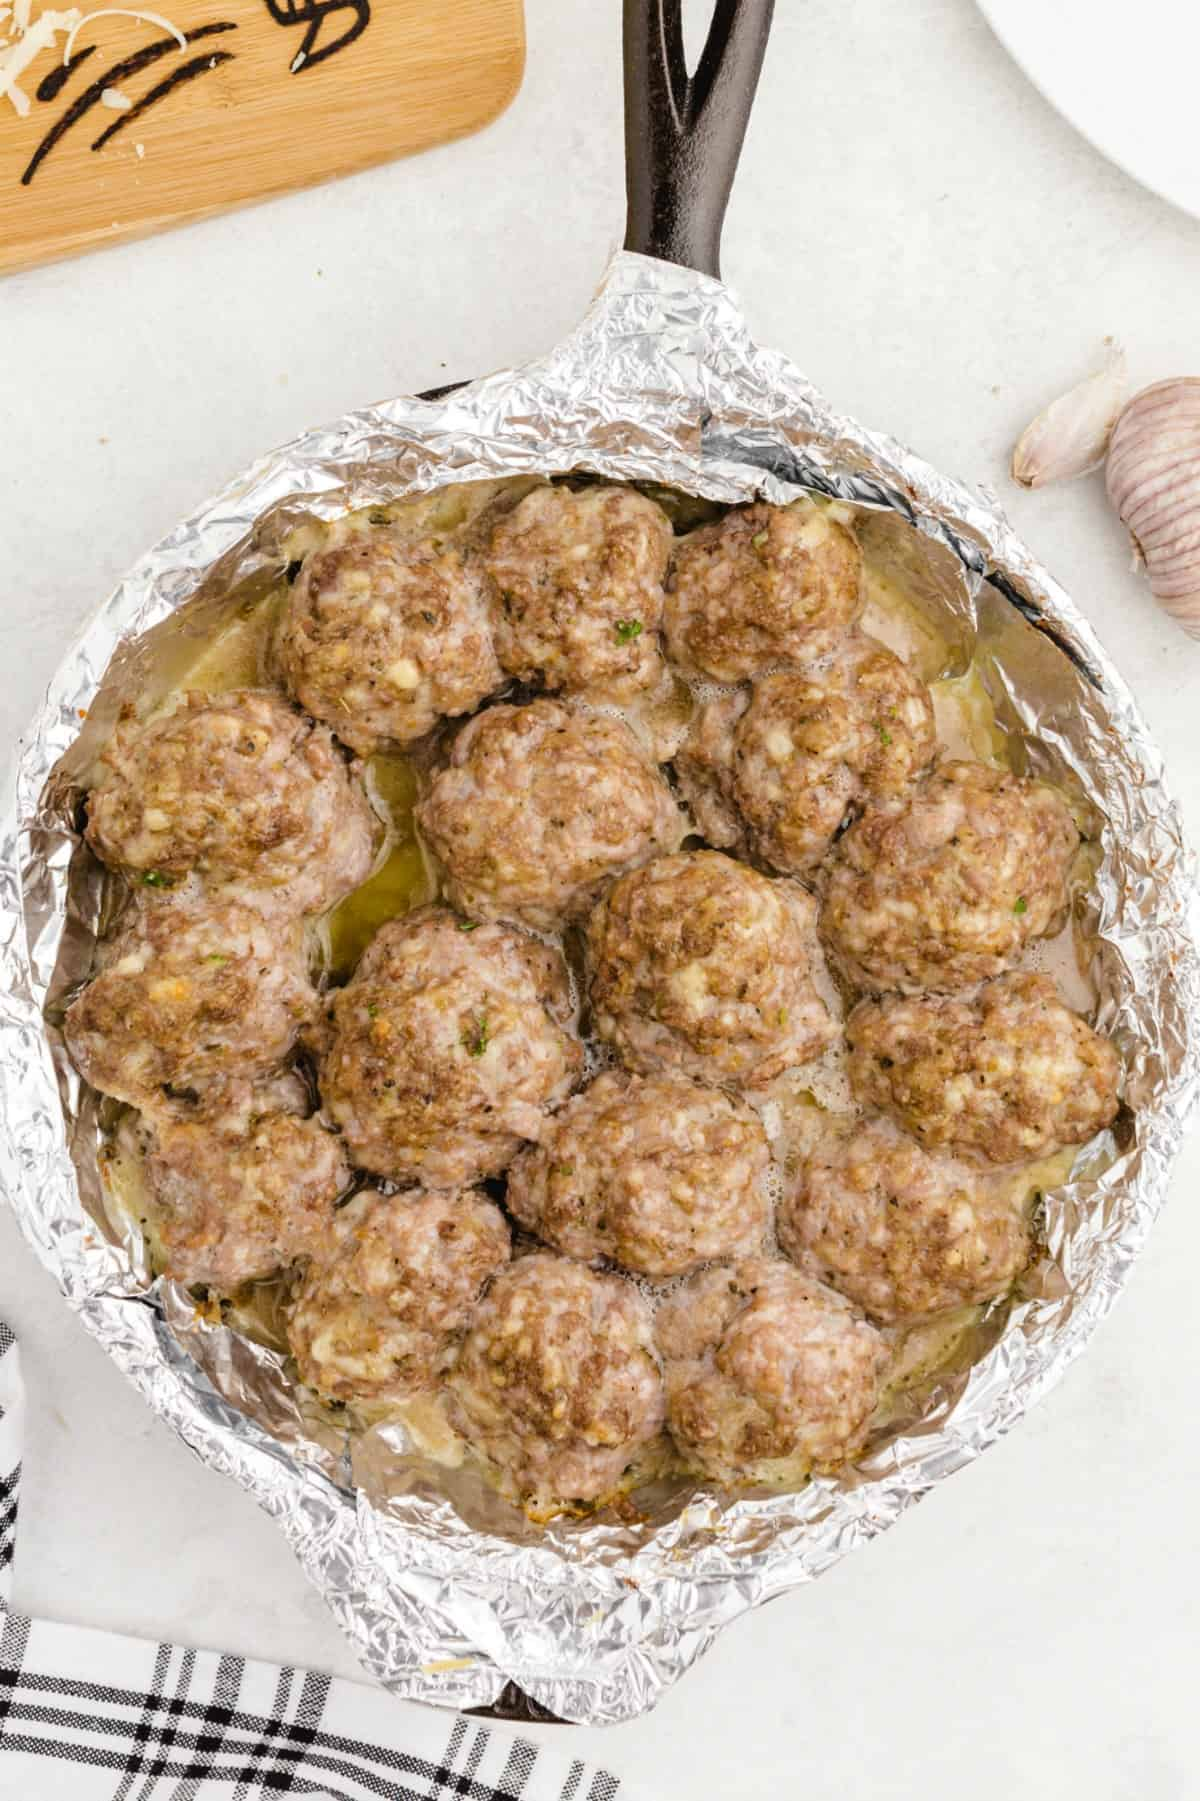 cooked meatballs in a pan